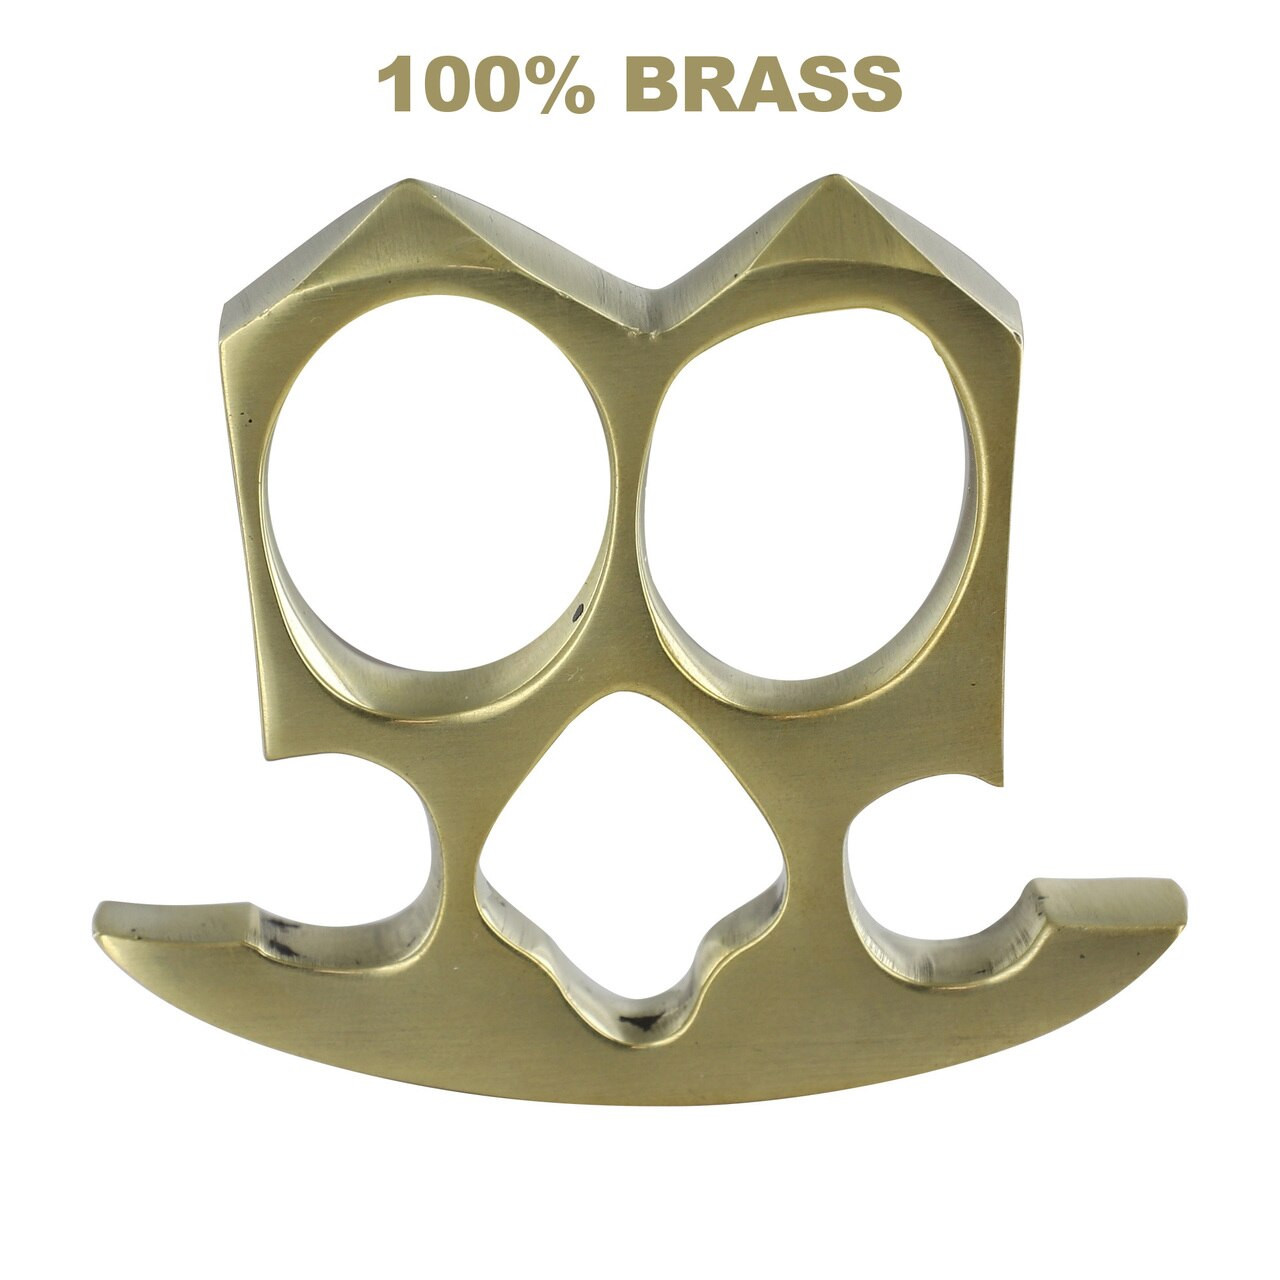 Two Finger Double Knuckle Pure Brass Paper Weight Knuckleduster